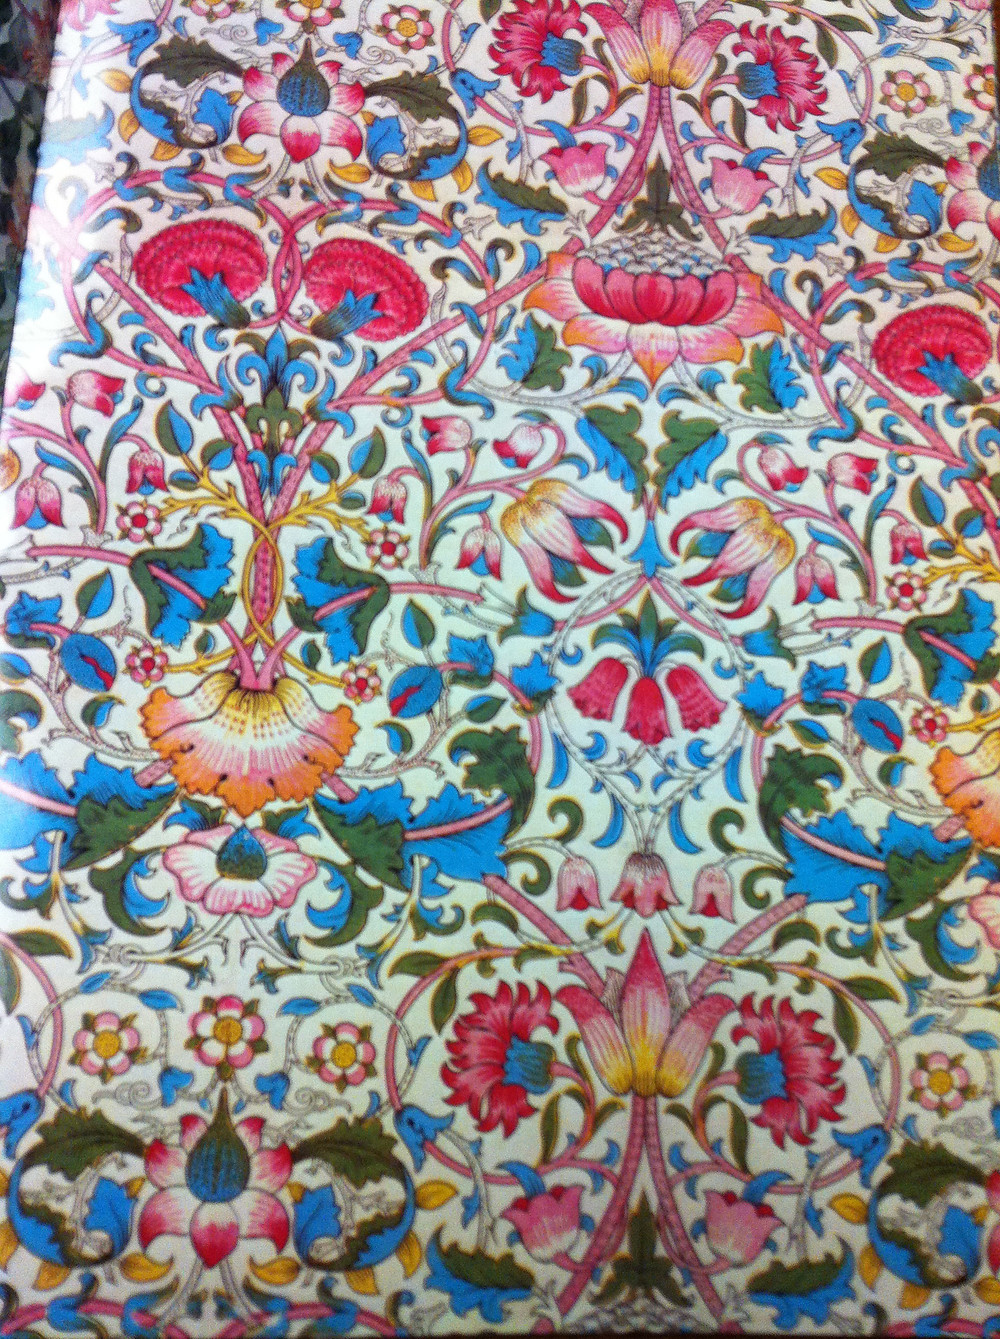 From Giftwrap by Artists: William Morris: http://www.amazon.com/Giftwraps-Artists-William-Joost-Elffers/dp/0810929503/ref=sr_1_1?ie=UTF8&qid=1355519565&sr=8-1&keywords=Giftwrap+by+Artists